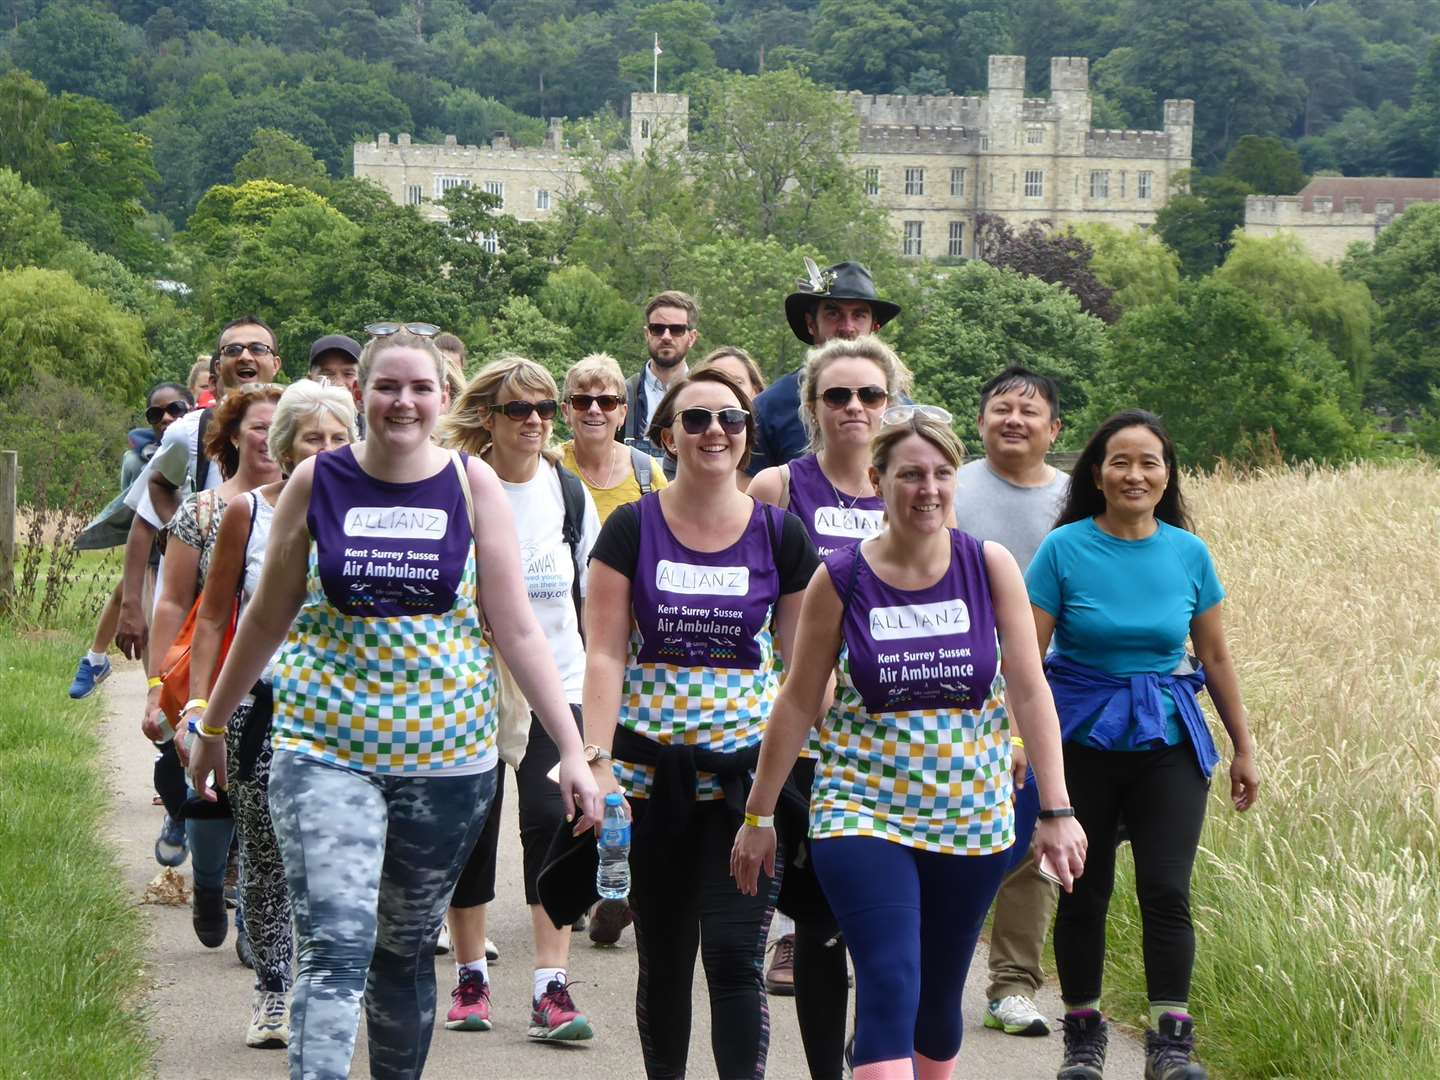 The KM Charity Walk links Mote House with Leeds Castle in Maidstone